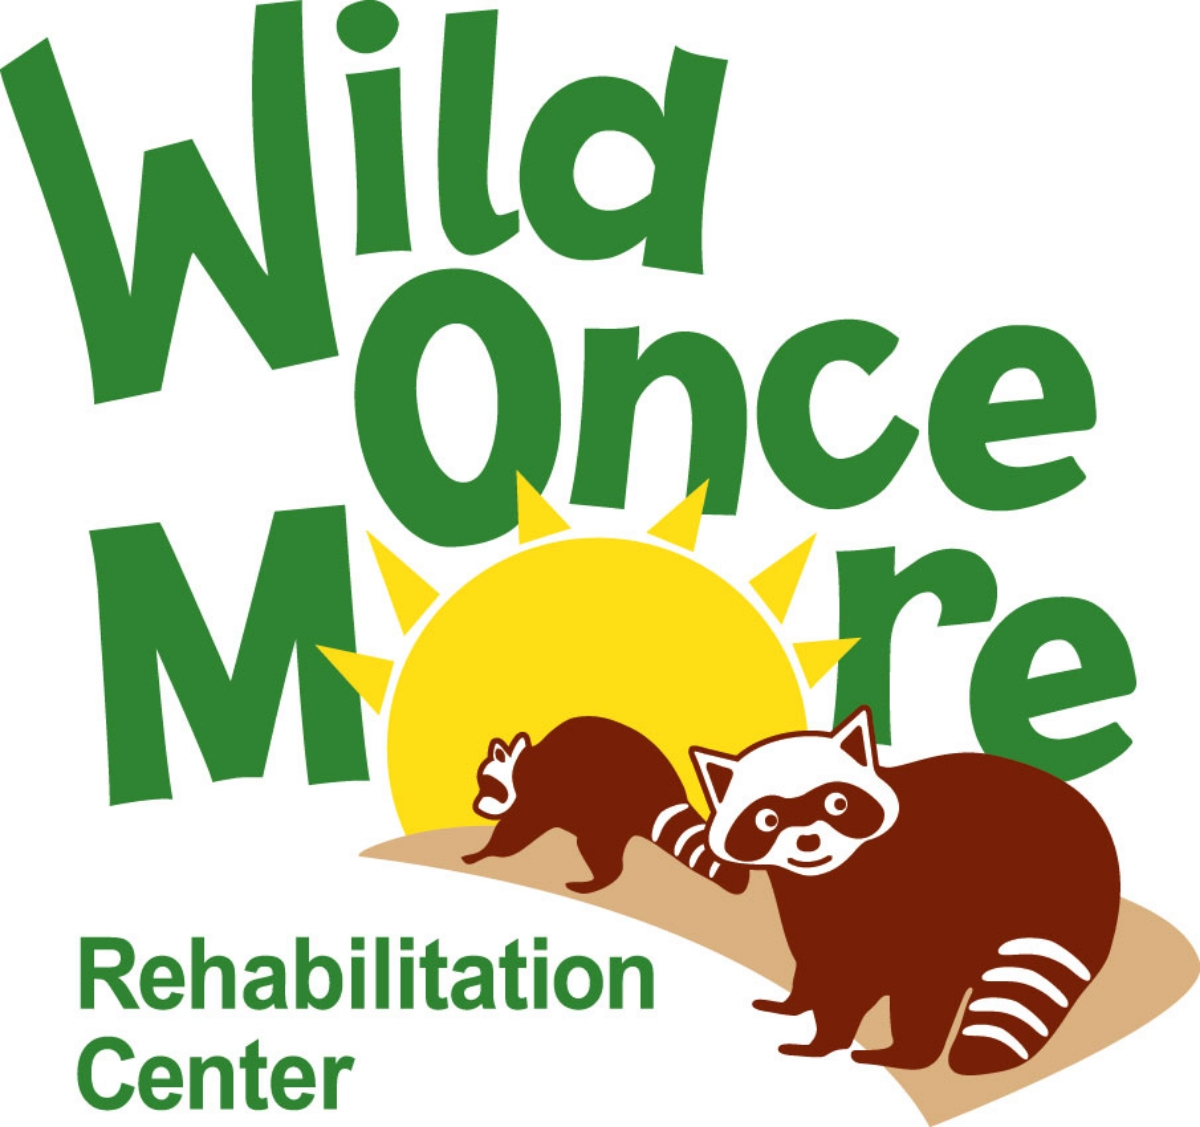 Wild Once More Rehabilitation Center